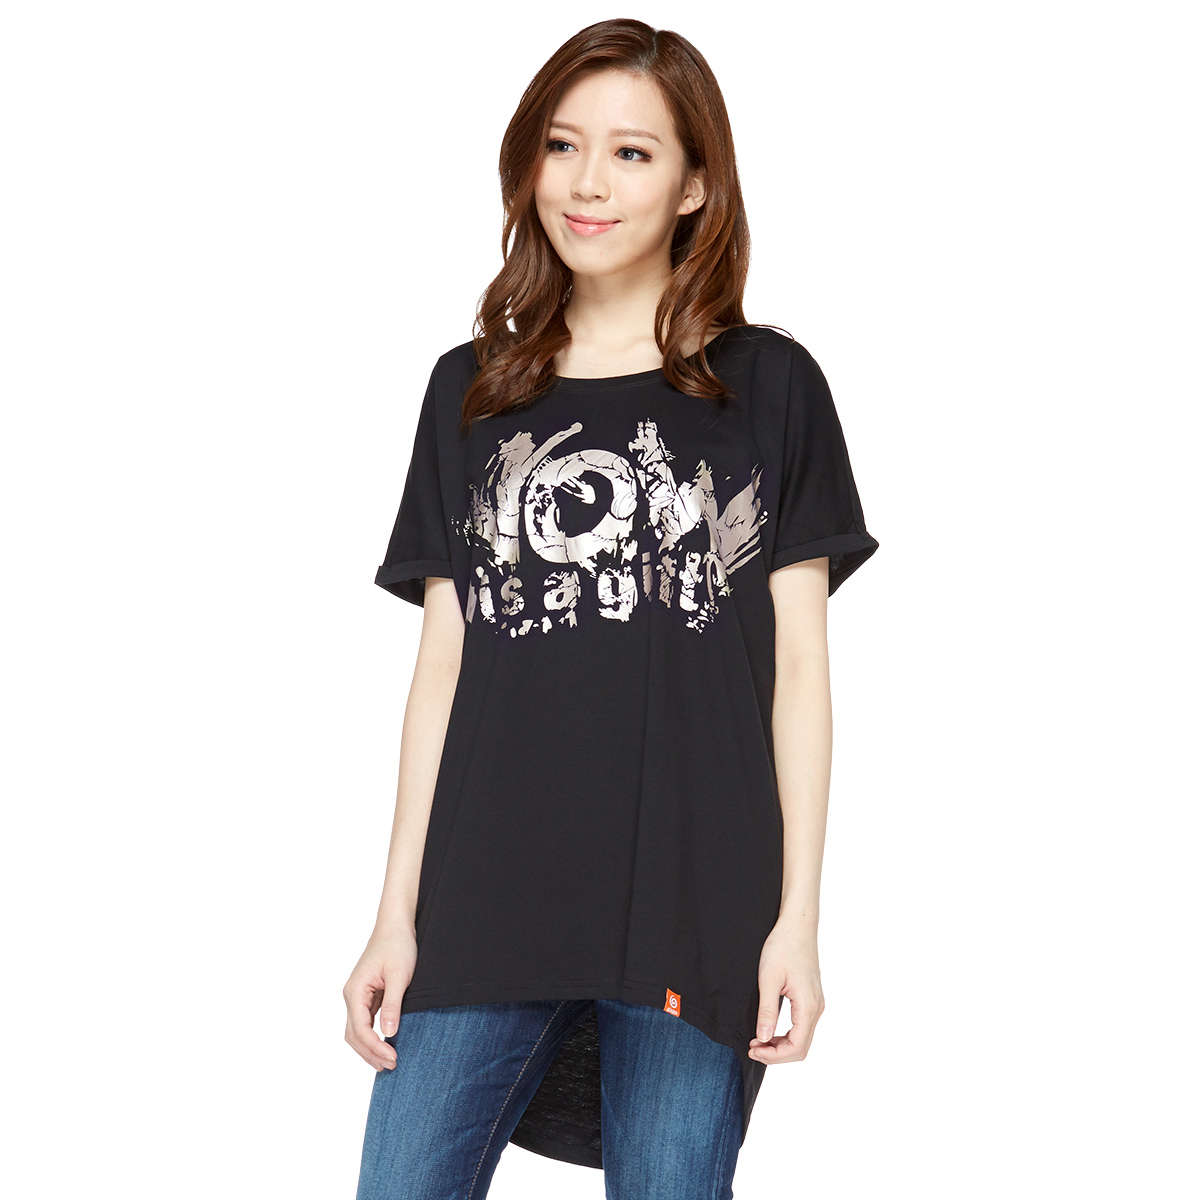 NOW is a gift Lady Loose Roll-sleeve Tee